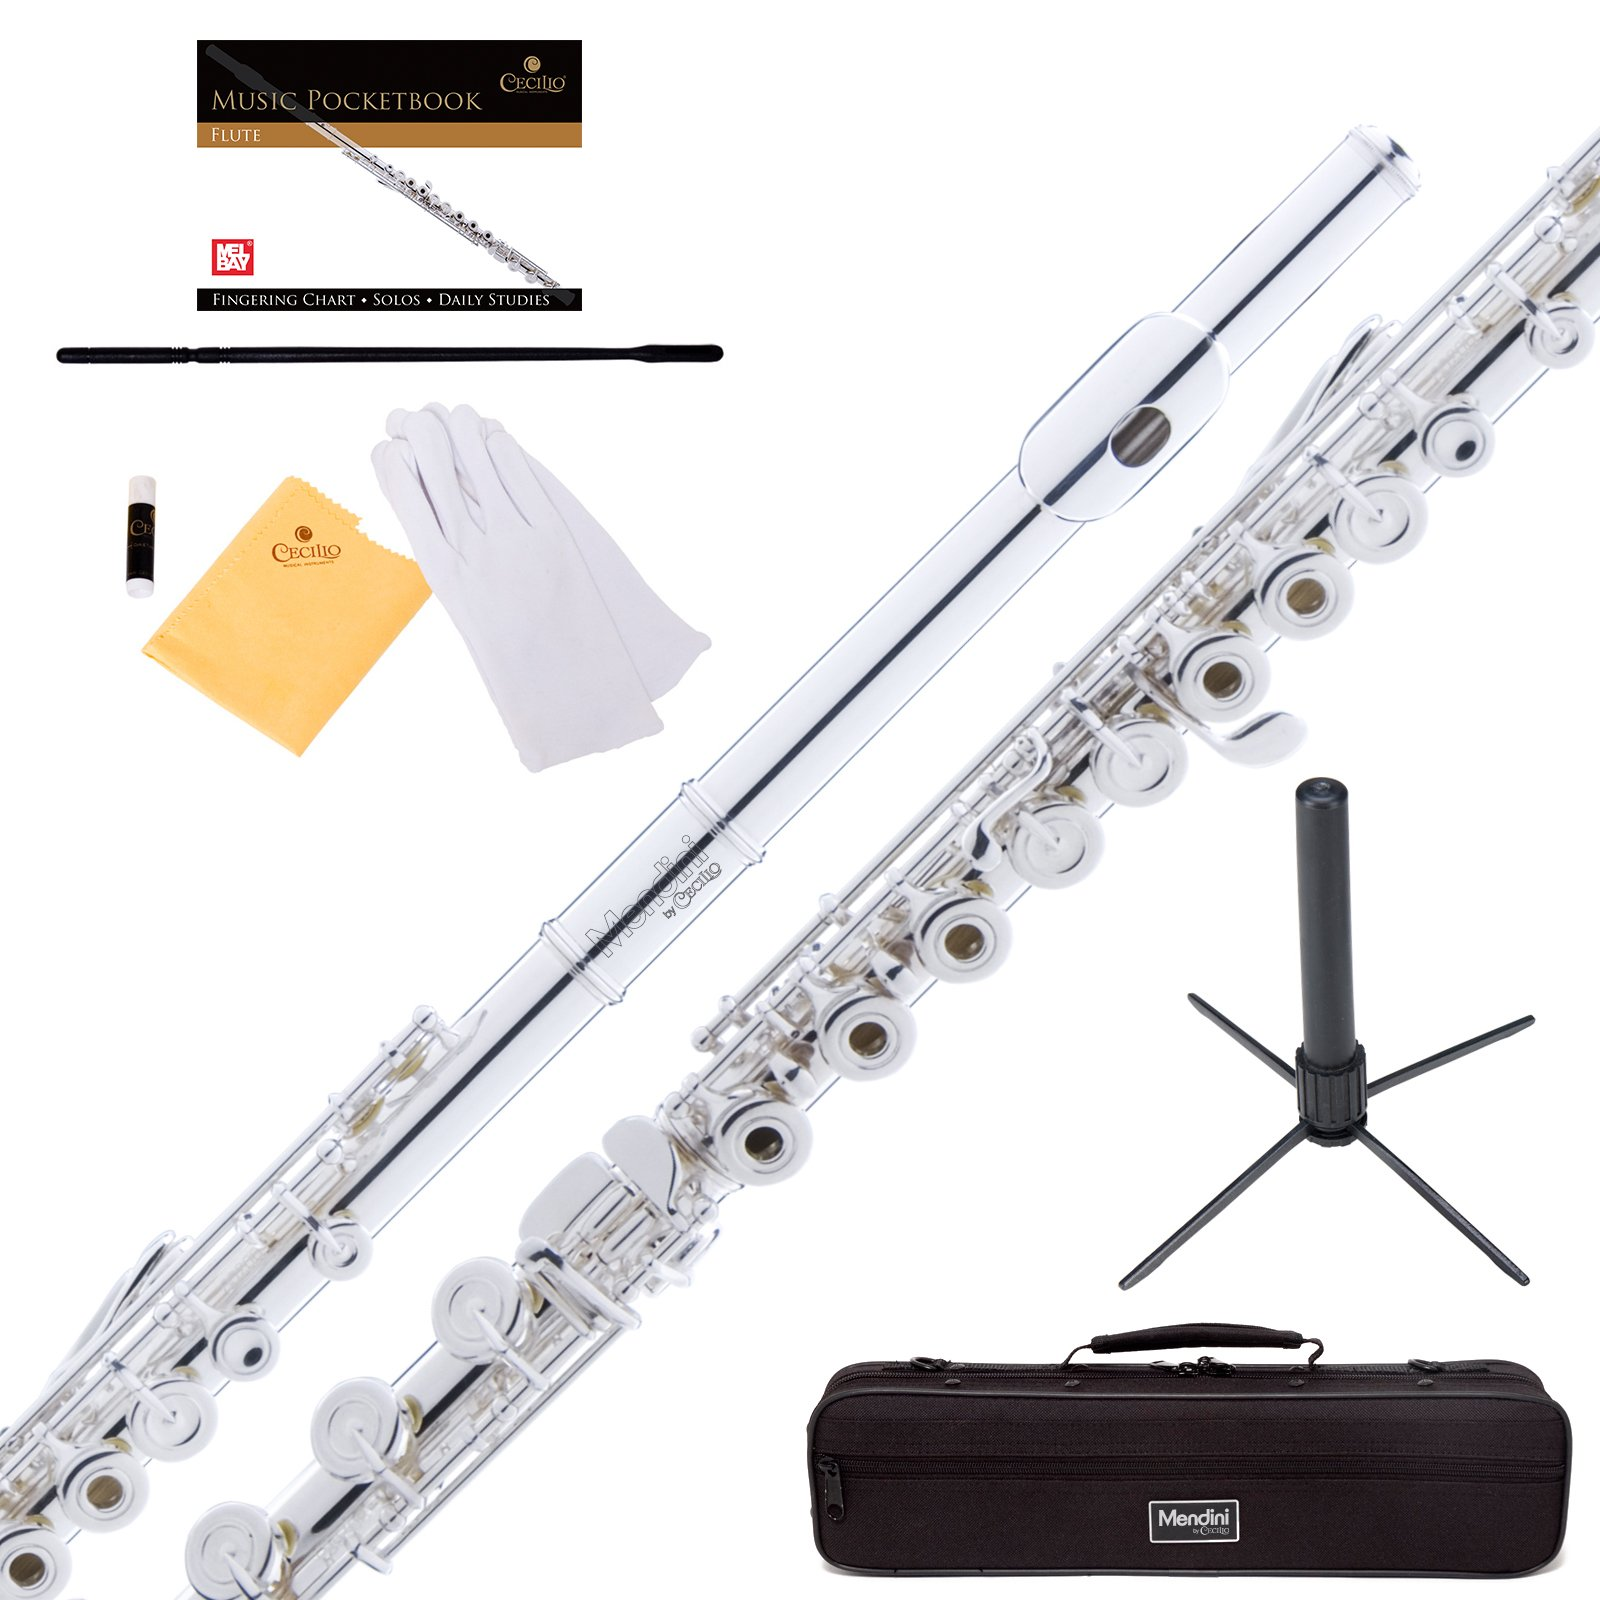 Mendini Silver Plated Intermediate 17 Keys Open/Closed-Hole C Flute w/ B Foot Joint, Durable Case, 1 Yr Warranty, Stand, Book, Cleaning Rod & Cloth, Joint Grease and Gloves MFE-30S+SD+PB by Mendini by Cecilio